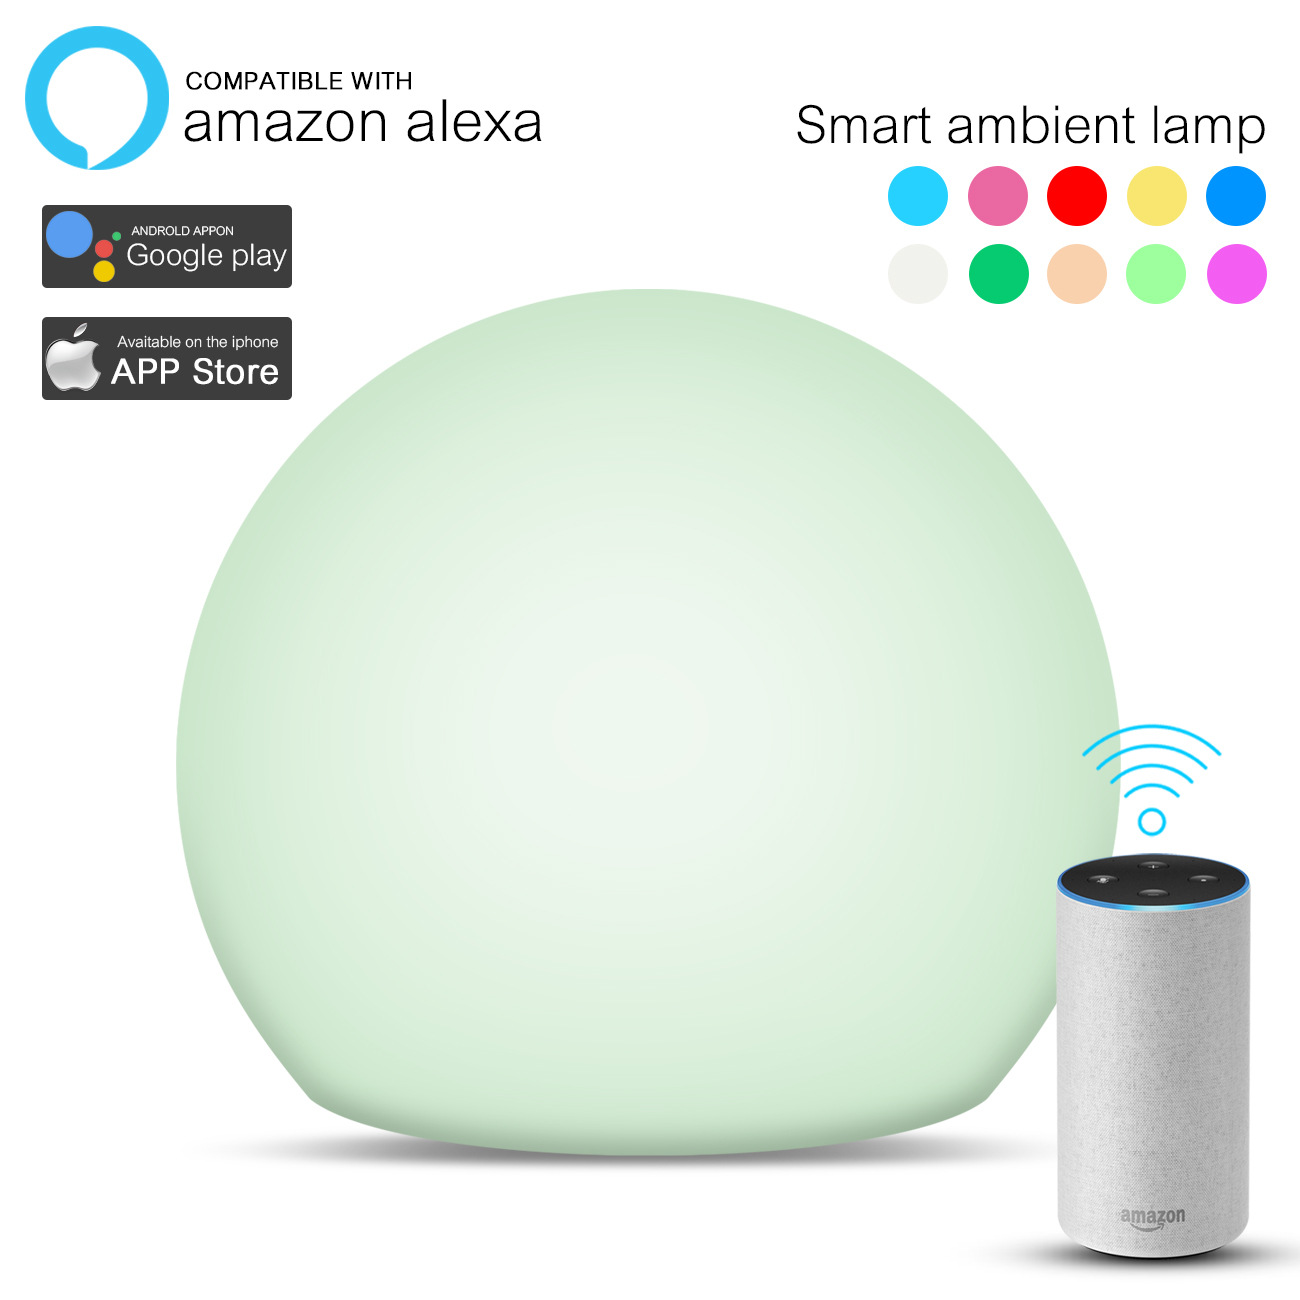 Smart Home Smart Table Night  Lamp Seven Color Ambient Light With Musical For Amazon Alexa For Birthday Party Gift Home Decor